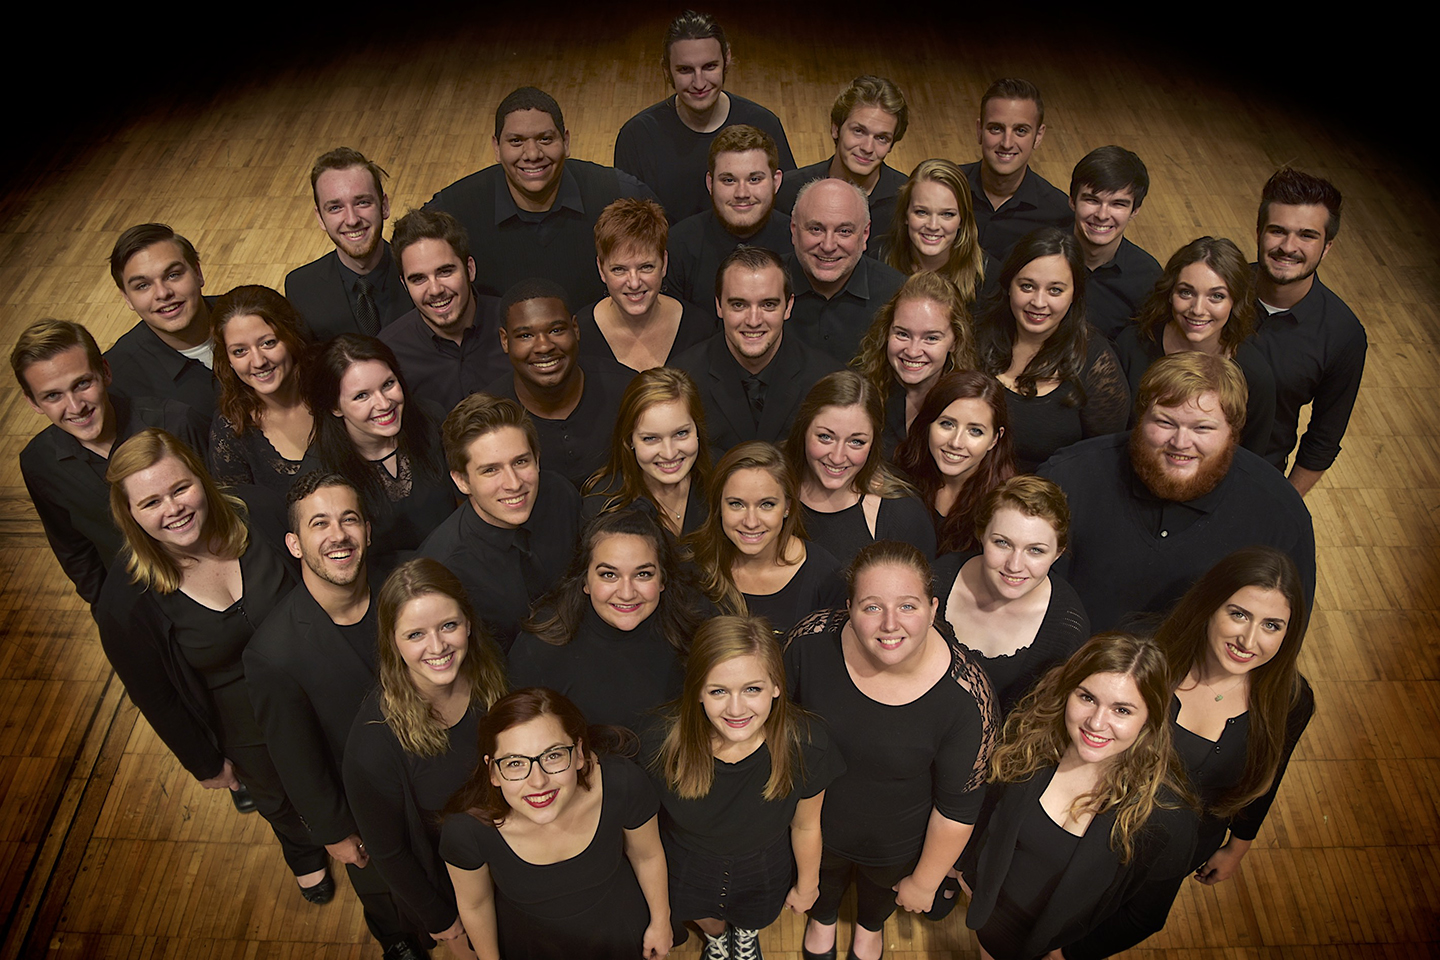 Oakland Chorale members all dressed in black, standing on a wooden floor looking up at the camera